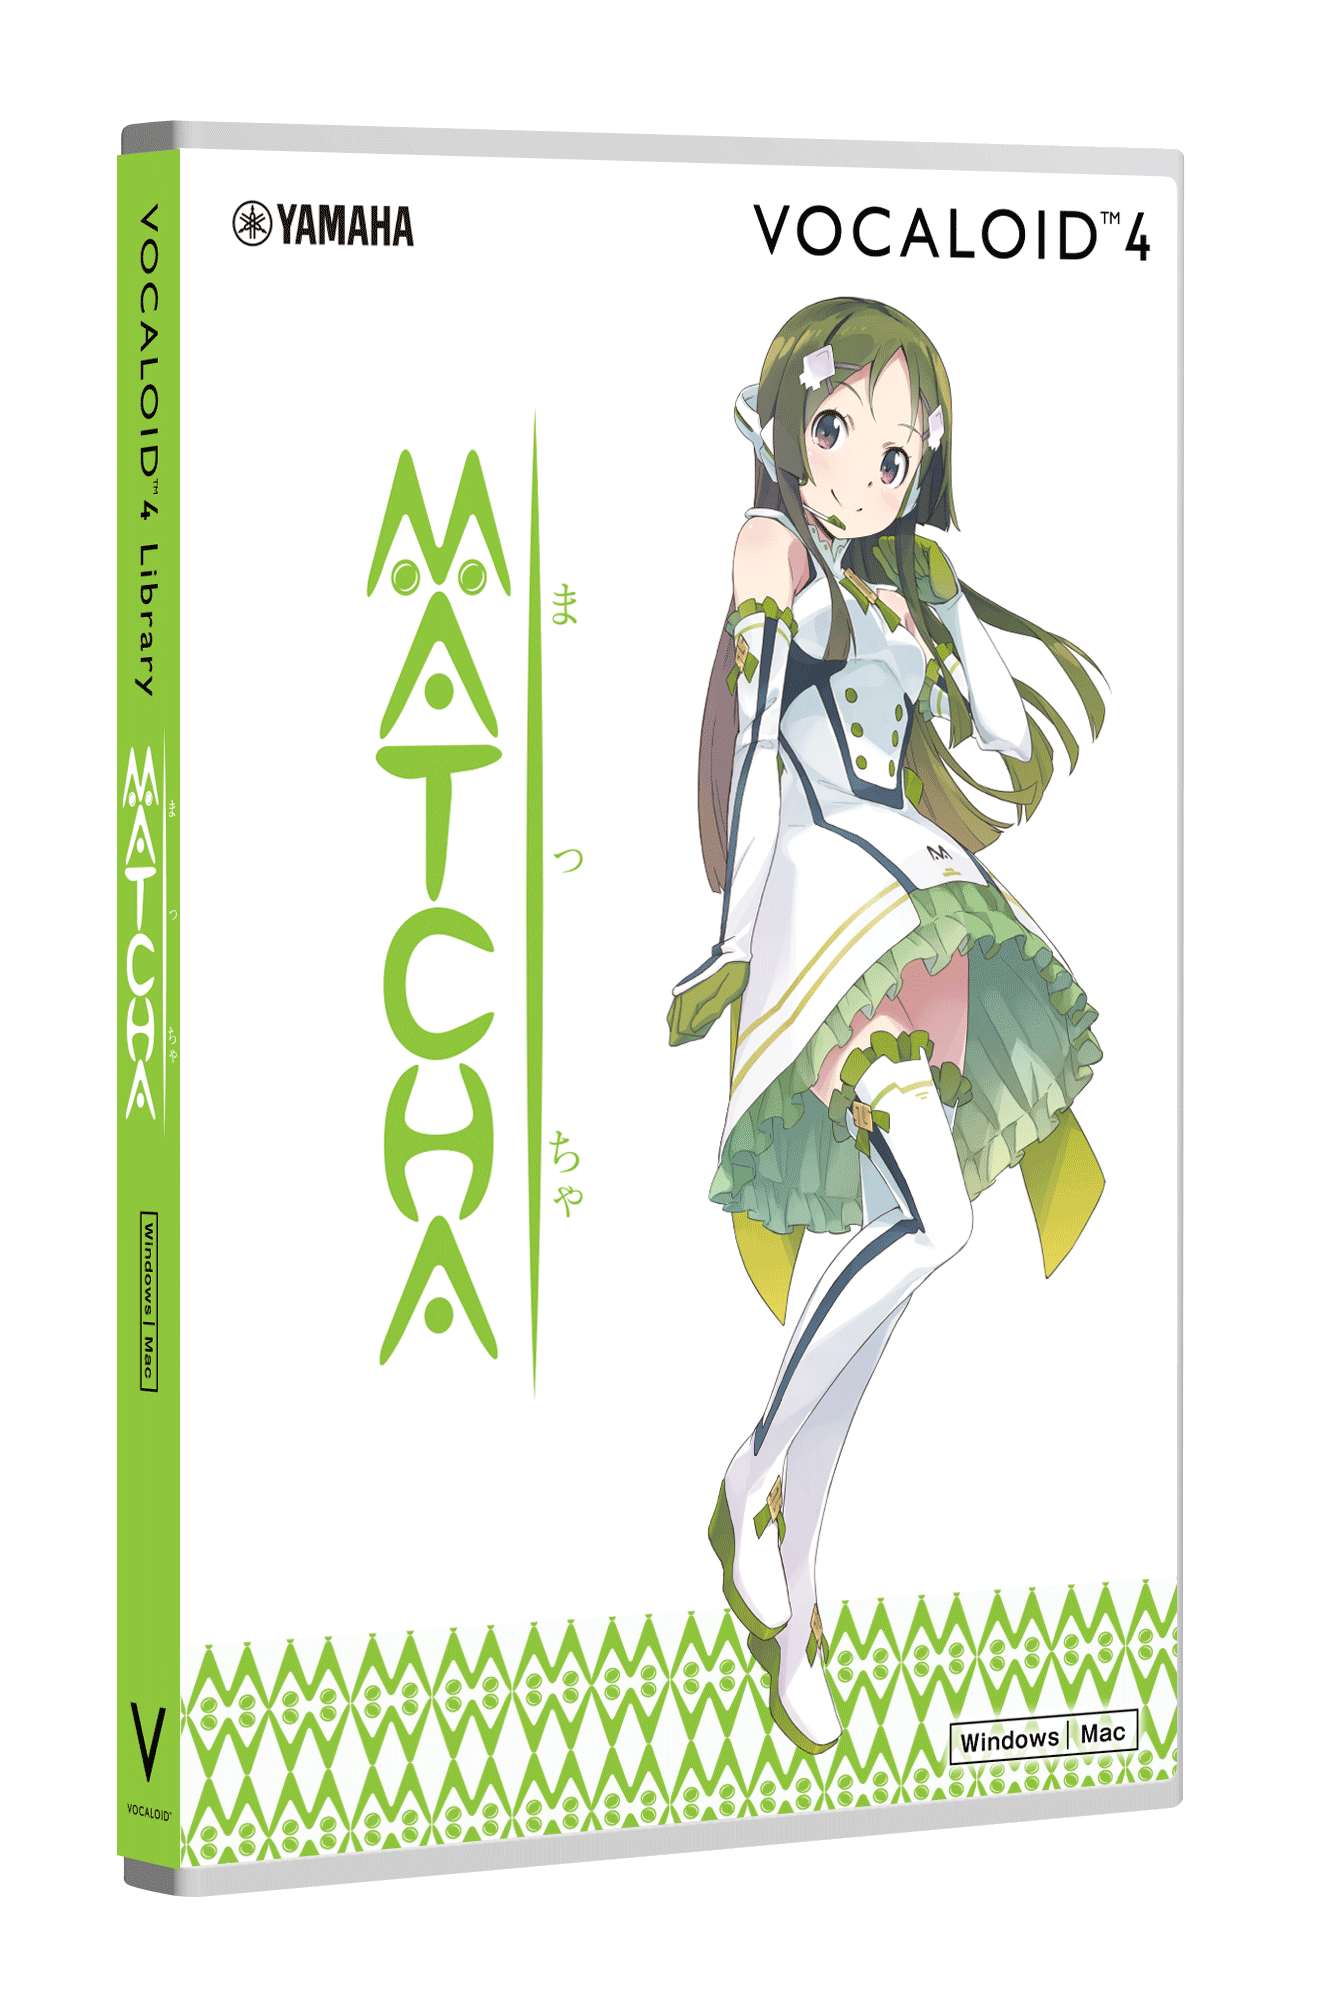 VOCALOID4 Library MATCHA | download product | VOCALOID SHOP